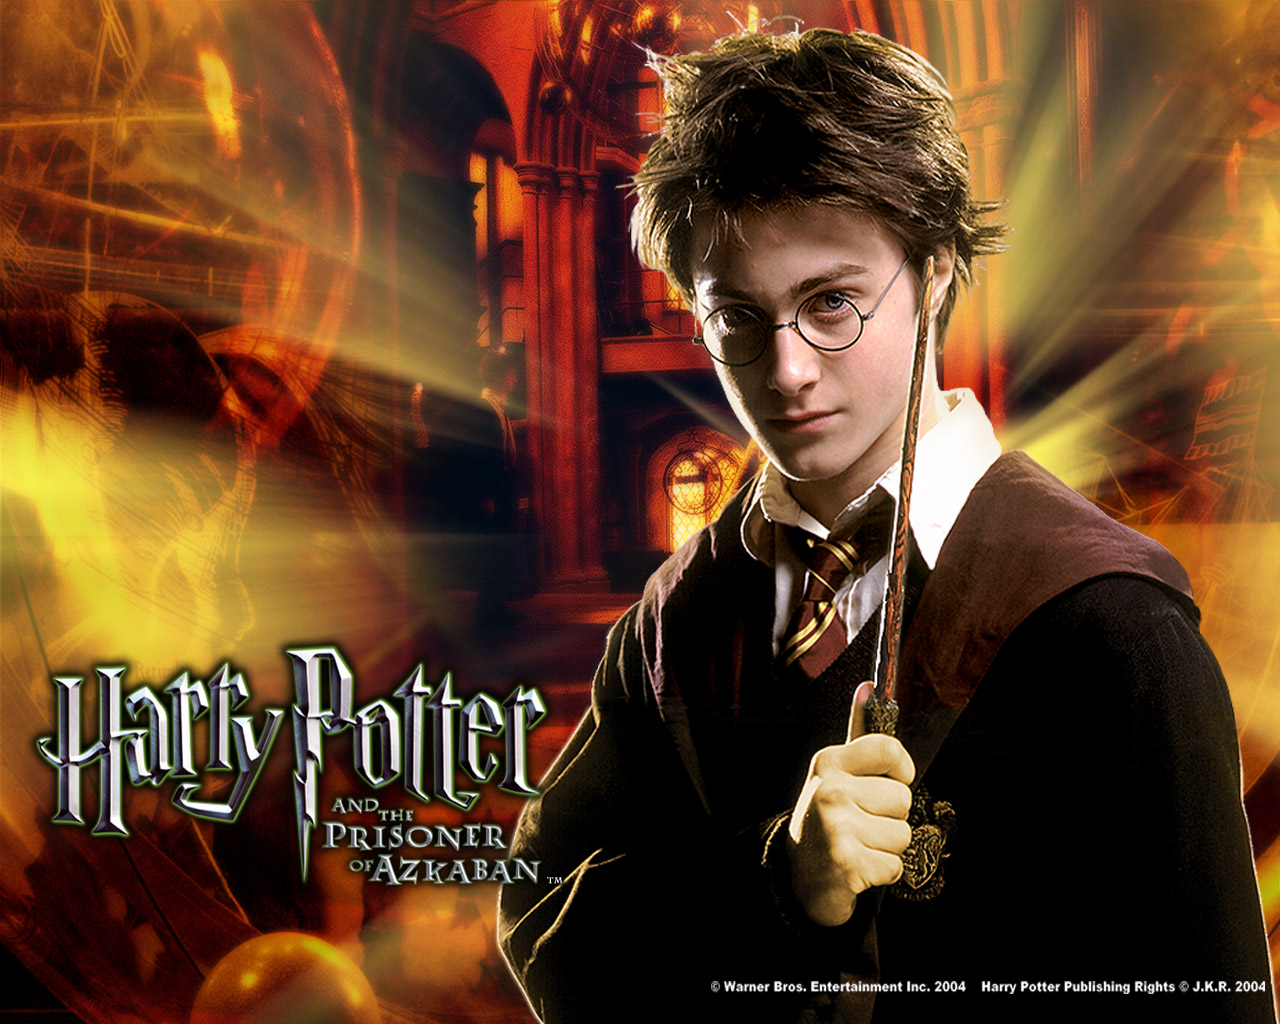 How Harry Potter Corrupts Our Children